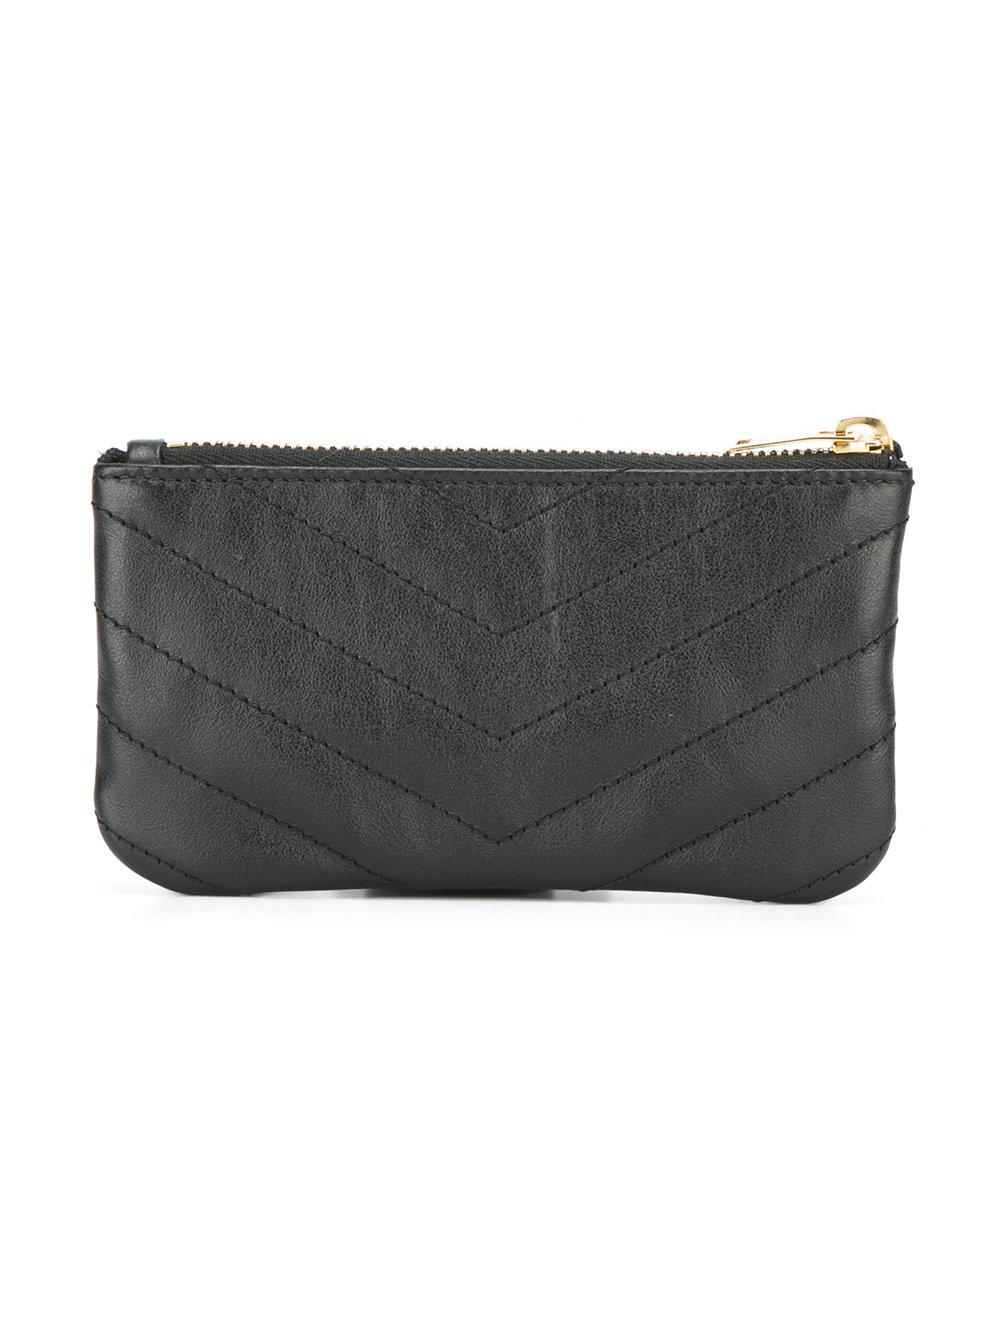 b368e9b8040 Lyst - Saint Laurent Monogrammed Coin Purse in Black